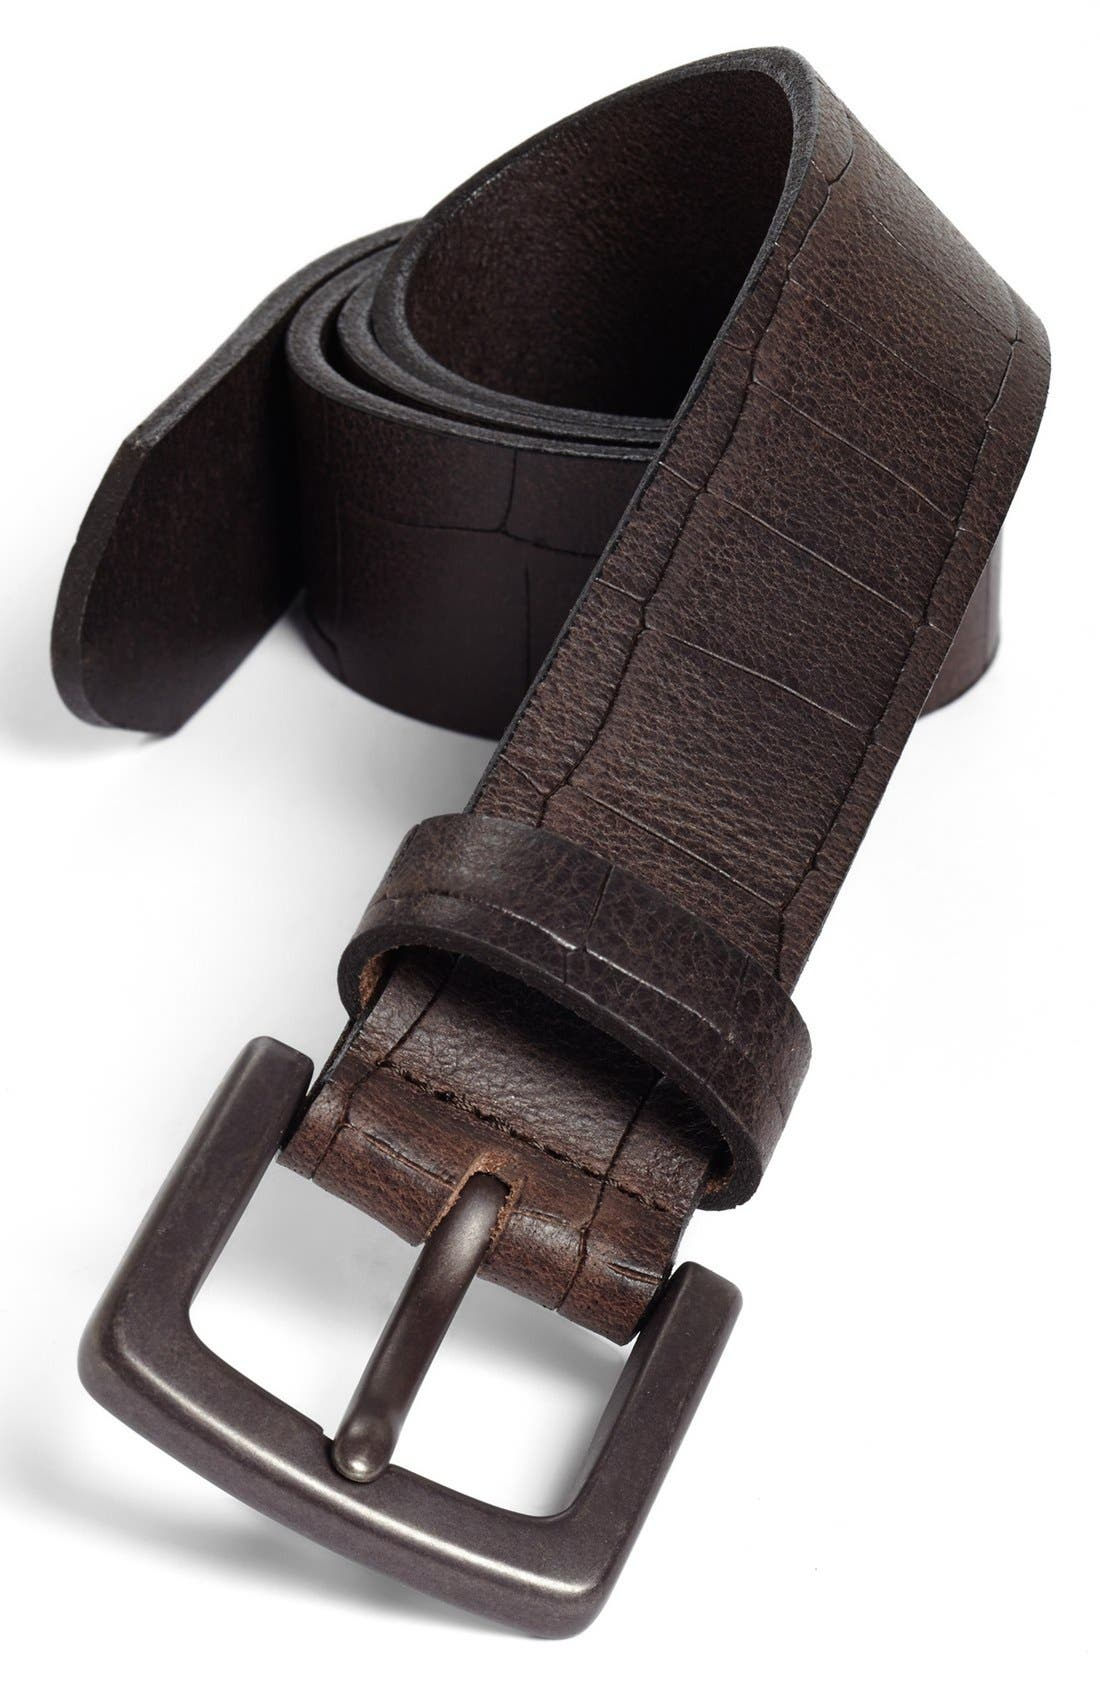 Gator Embossed Belt,                         Main,                         color, Dark Brown